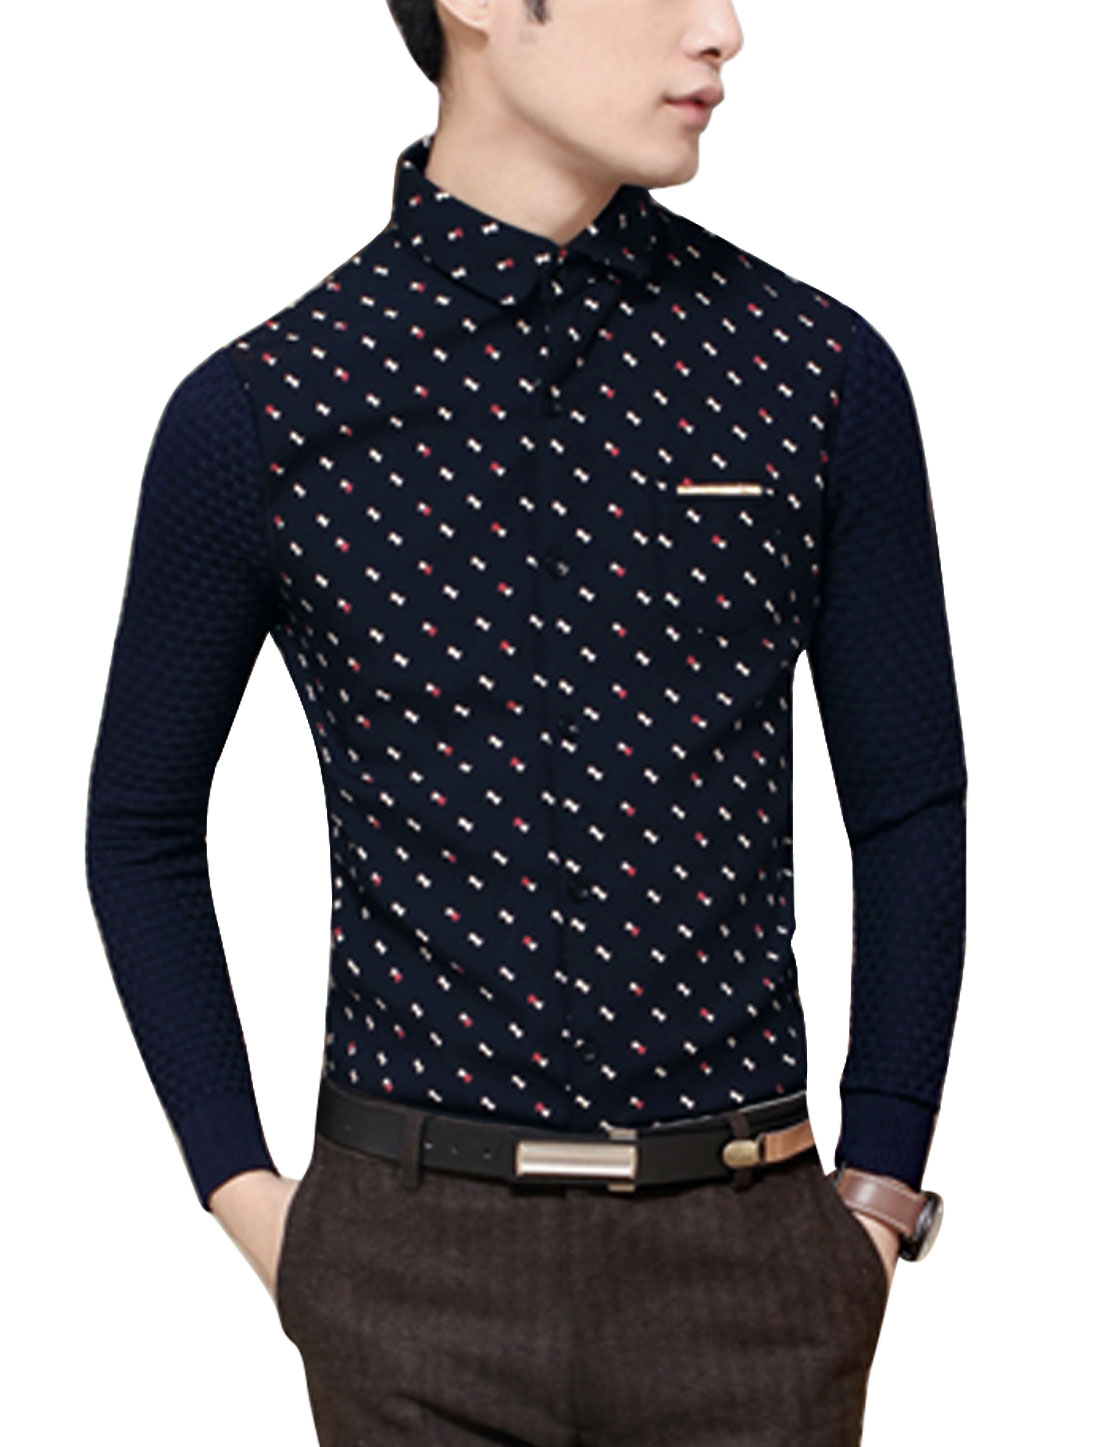 Men Bowknot Print Contrast Color Rib Knit Panel Slim Cut Shirt Navy Blue S